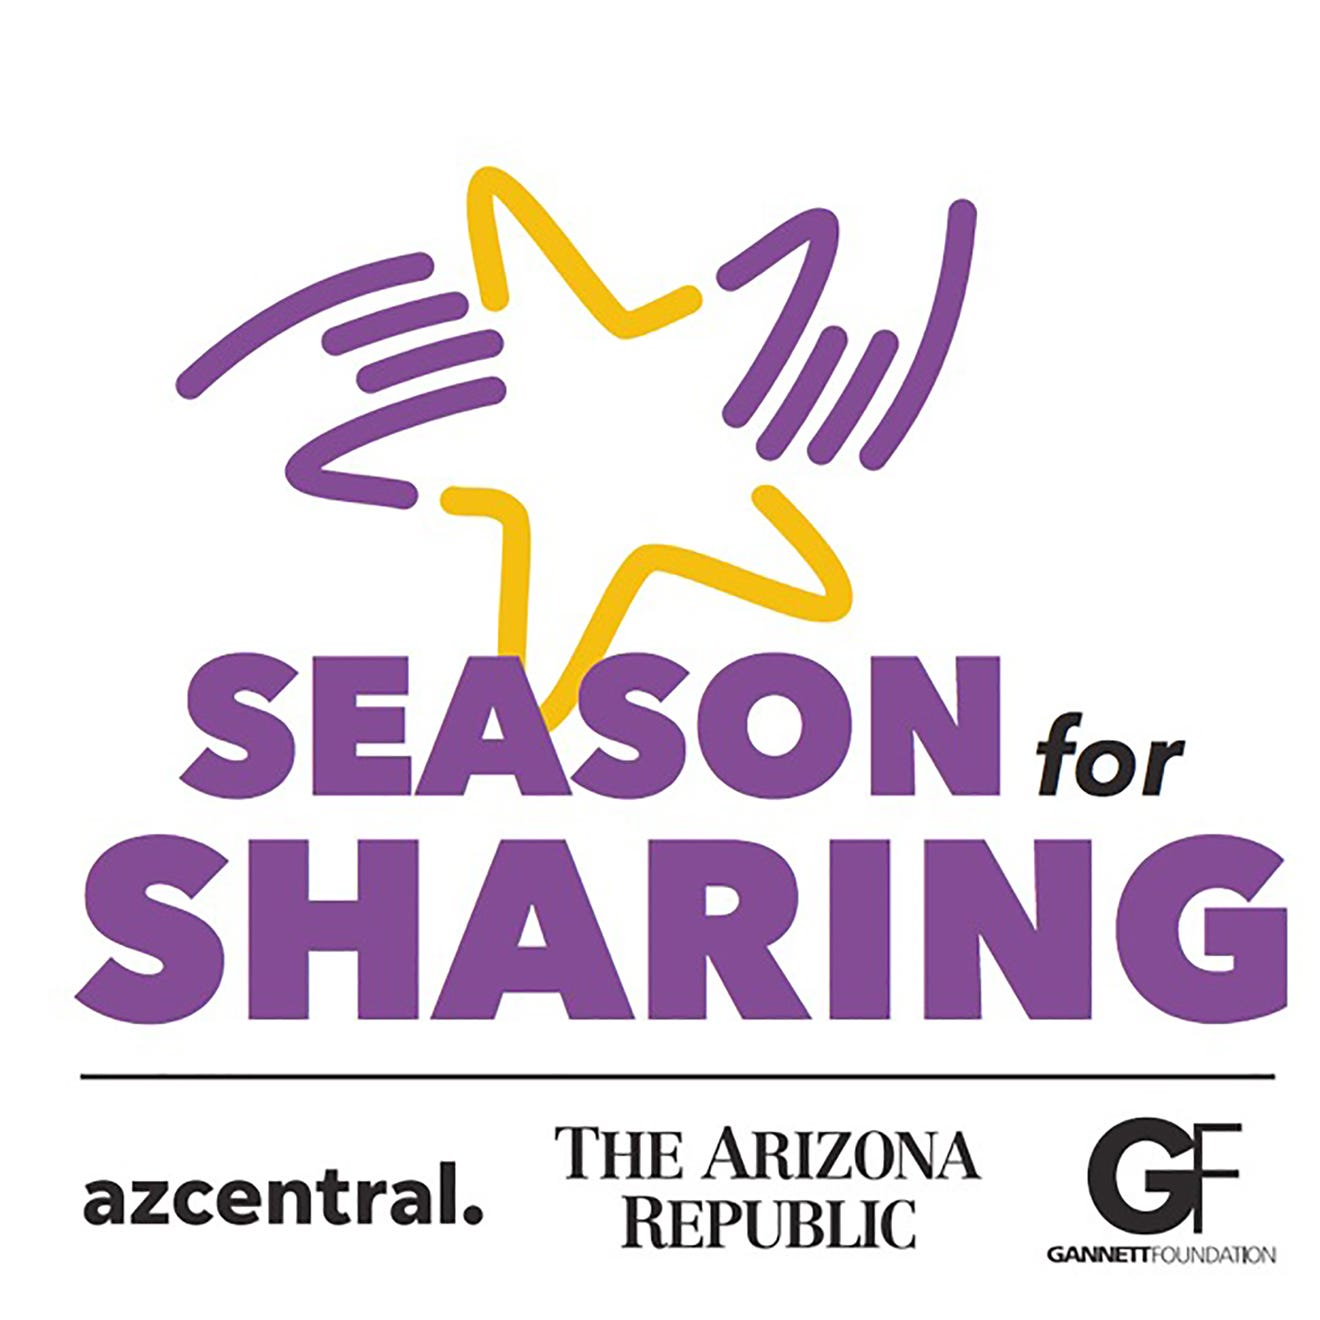 Season for Sharing gives $2.1 million to 162 Arizona non-profits